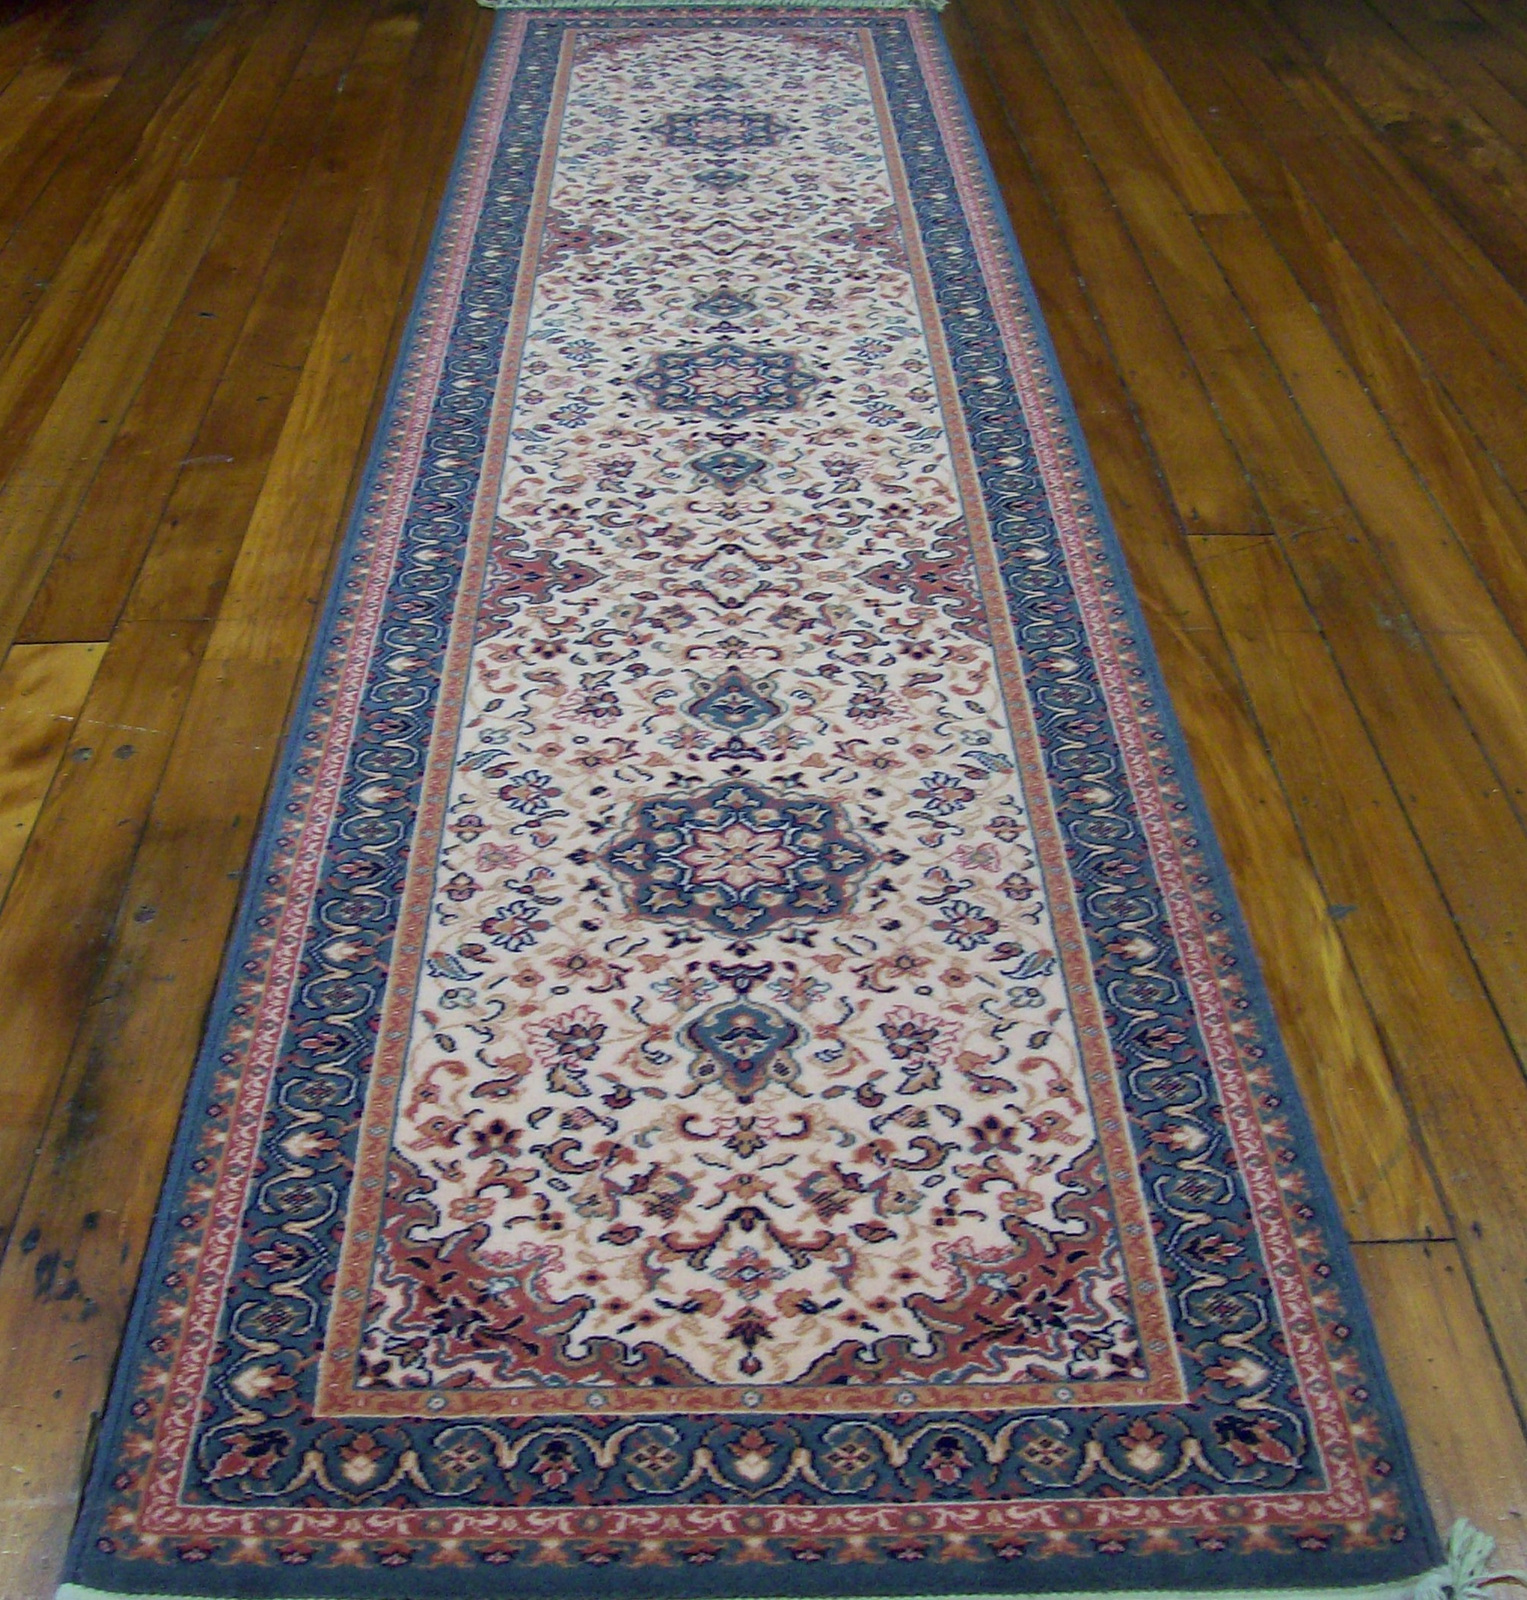 Saphir HR 95209/121 - Rugs For All